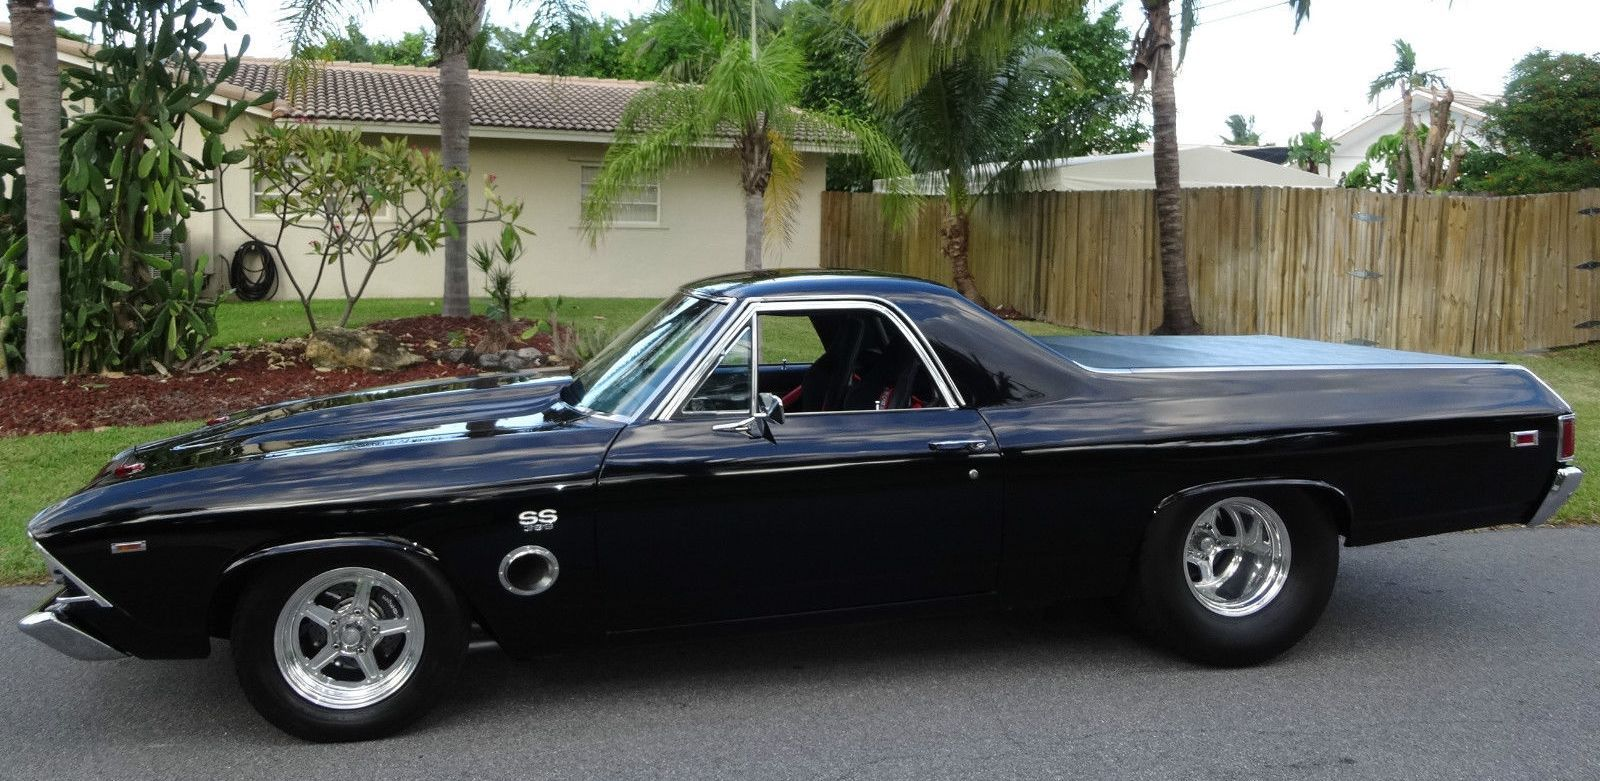 hight resolution of pro street el camino